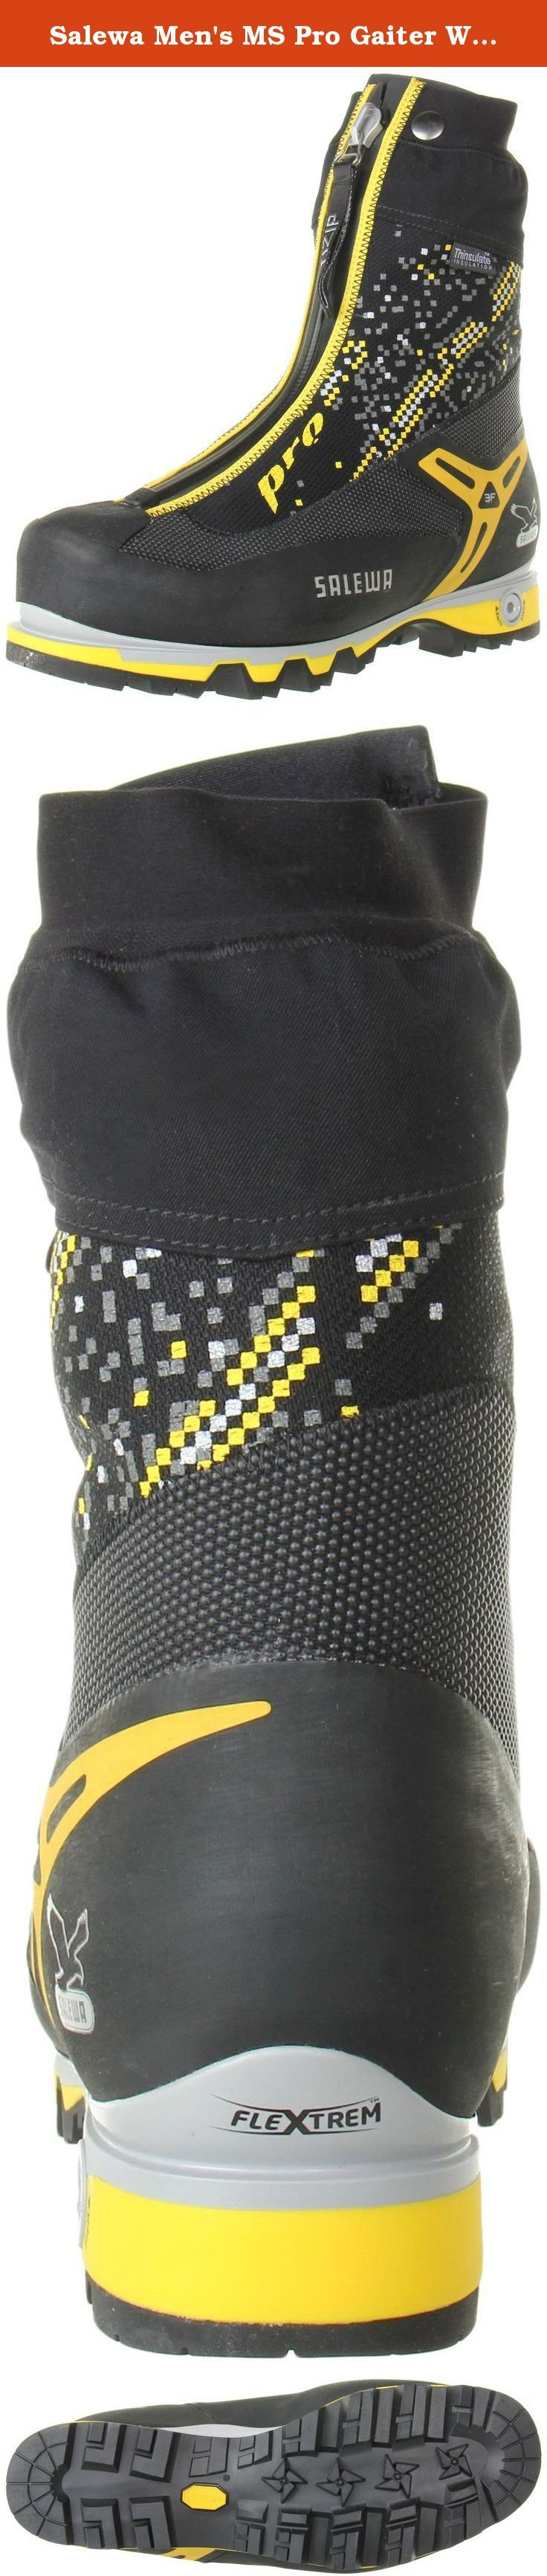 Salewa Men's MS Pro Gaiter W Mountaineering Boot, Black/Yellow, 11 W US. FEATURES of the Salewa Men's MS Pro Gaiter Boot The Salewa Men's MS Pro Gaiter Boot is a new benchmark for professional mountain guides and expert mountaineers. The boots feature an adjustable sole system and an anatomical last with a climbing toe profile. The Salewa Men's Pro Gaiter Boot contains Flex System, a patented Salewa design which can become 100% stiff when you need it. Multiple lasts in this shoe means no...